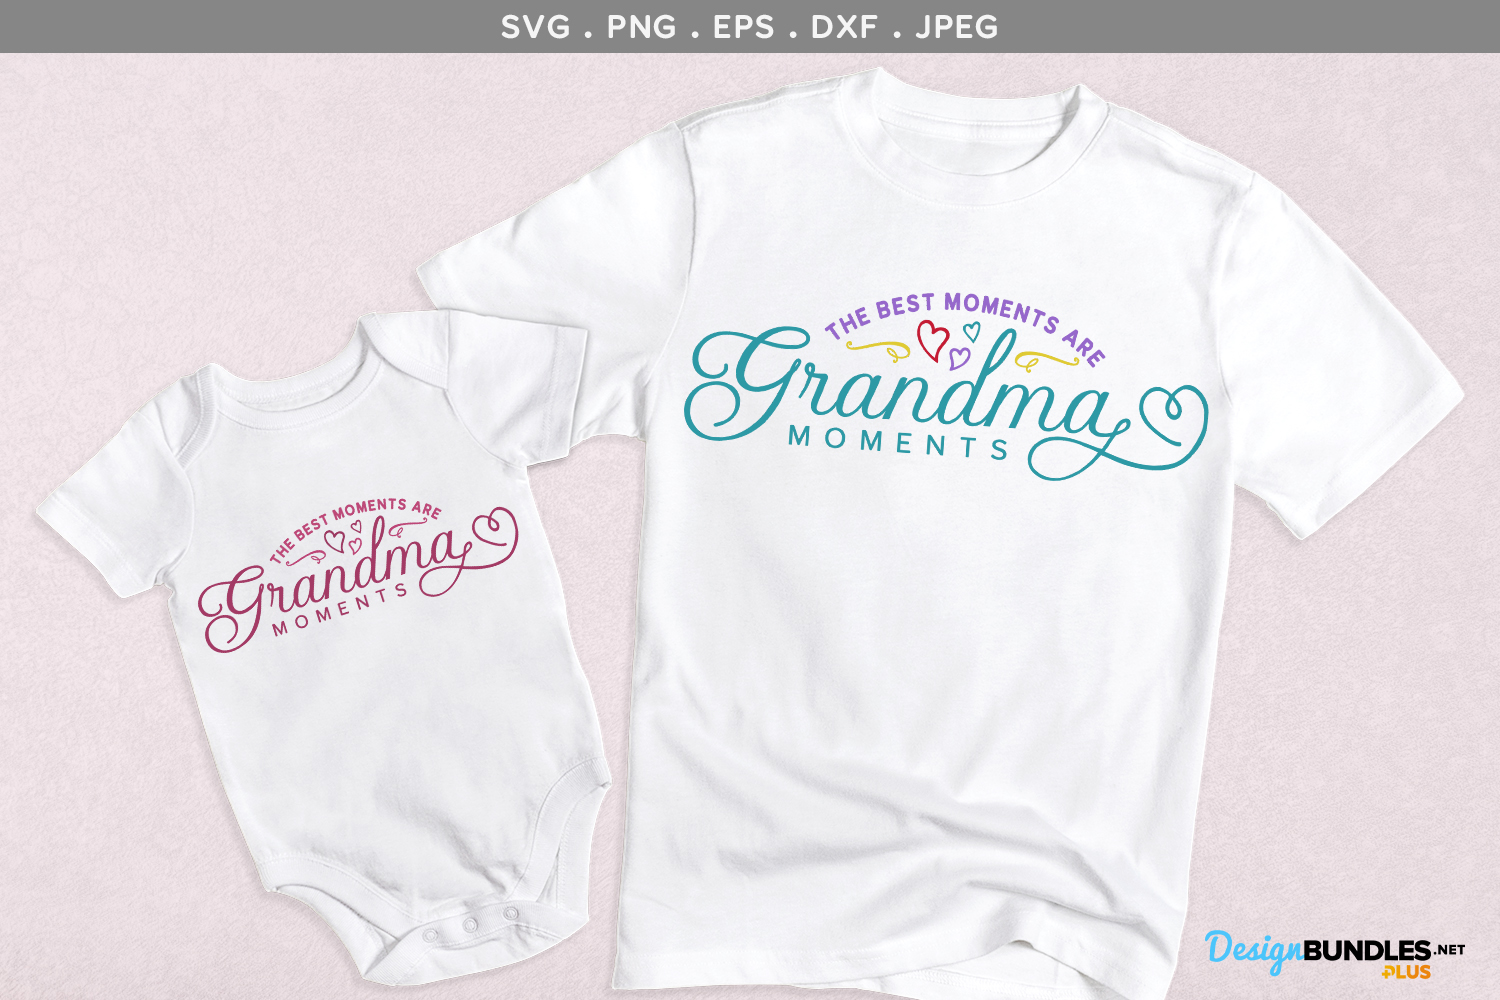 Best Moments are Grandma moments - svg cut file example image 1